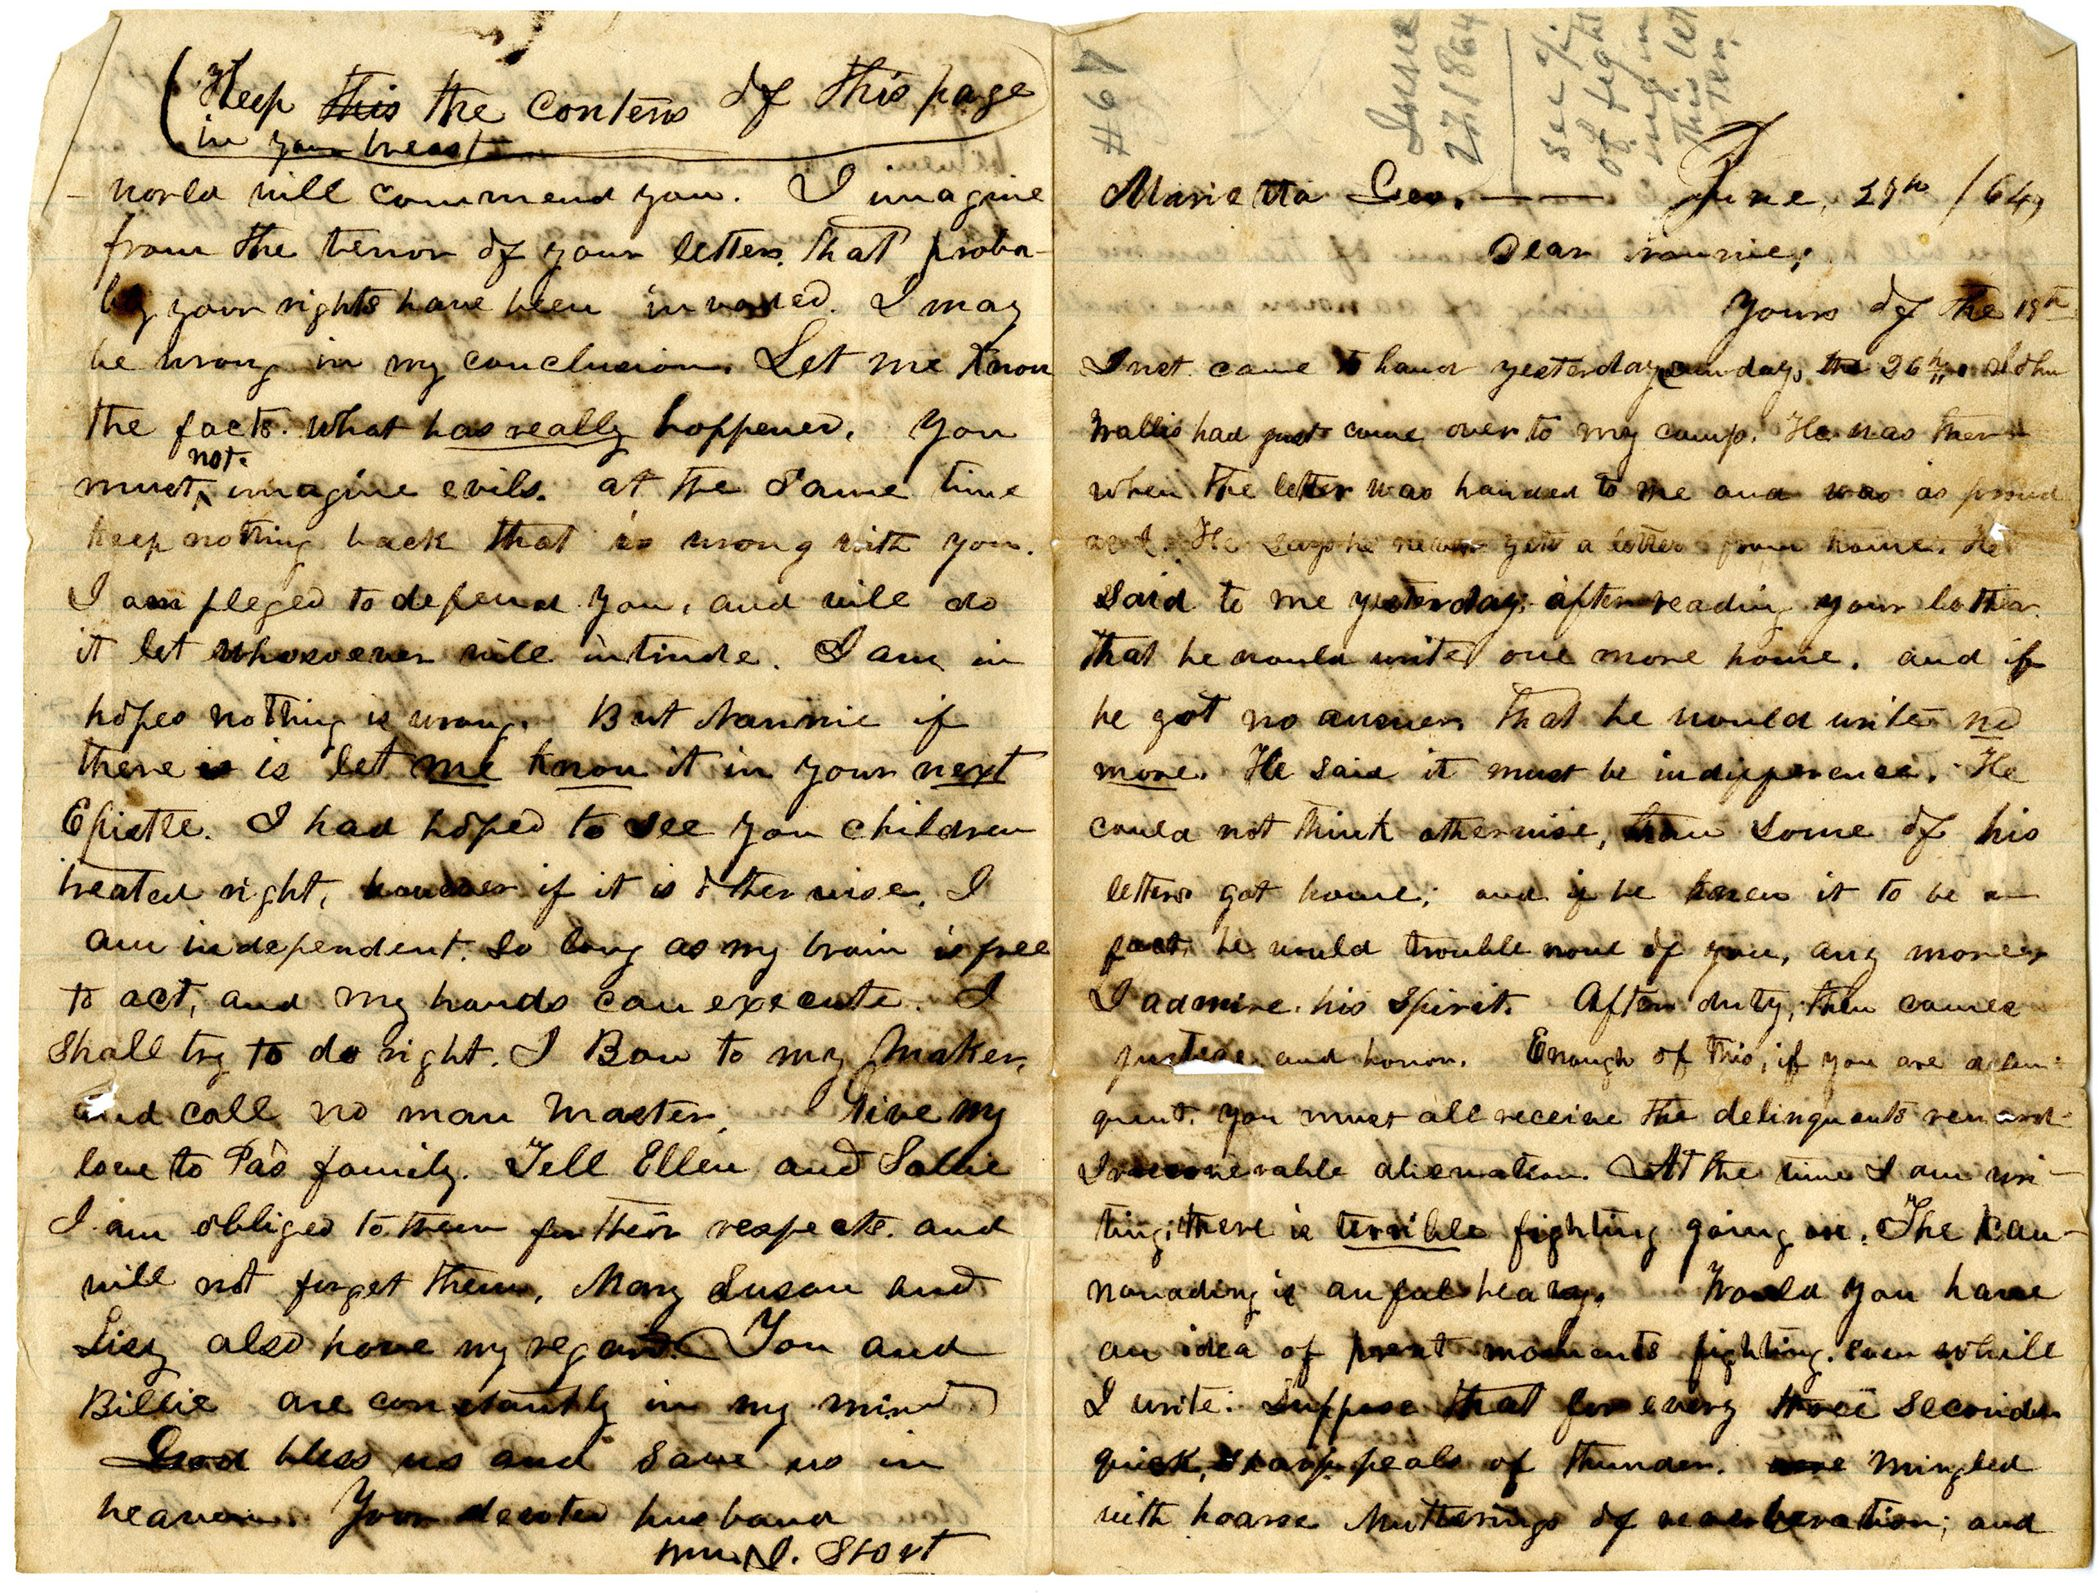 Letter Provides First Hand Account Of Battle Of Kennesaw Mountain